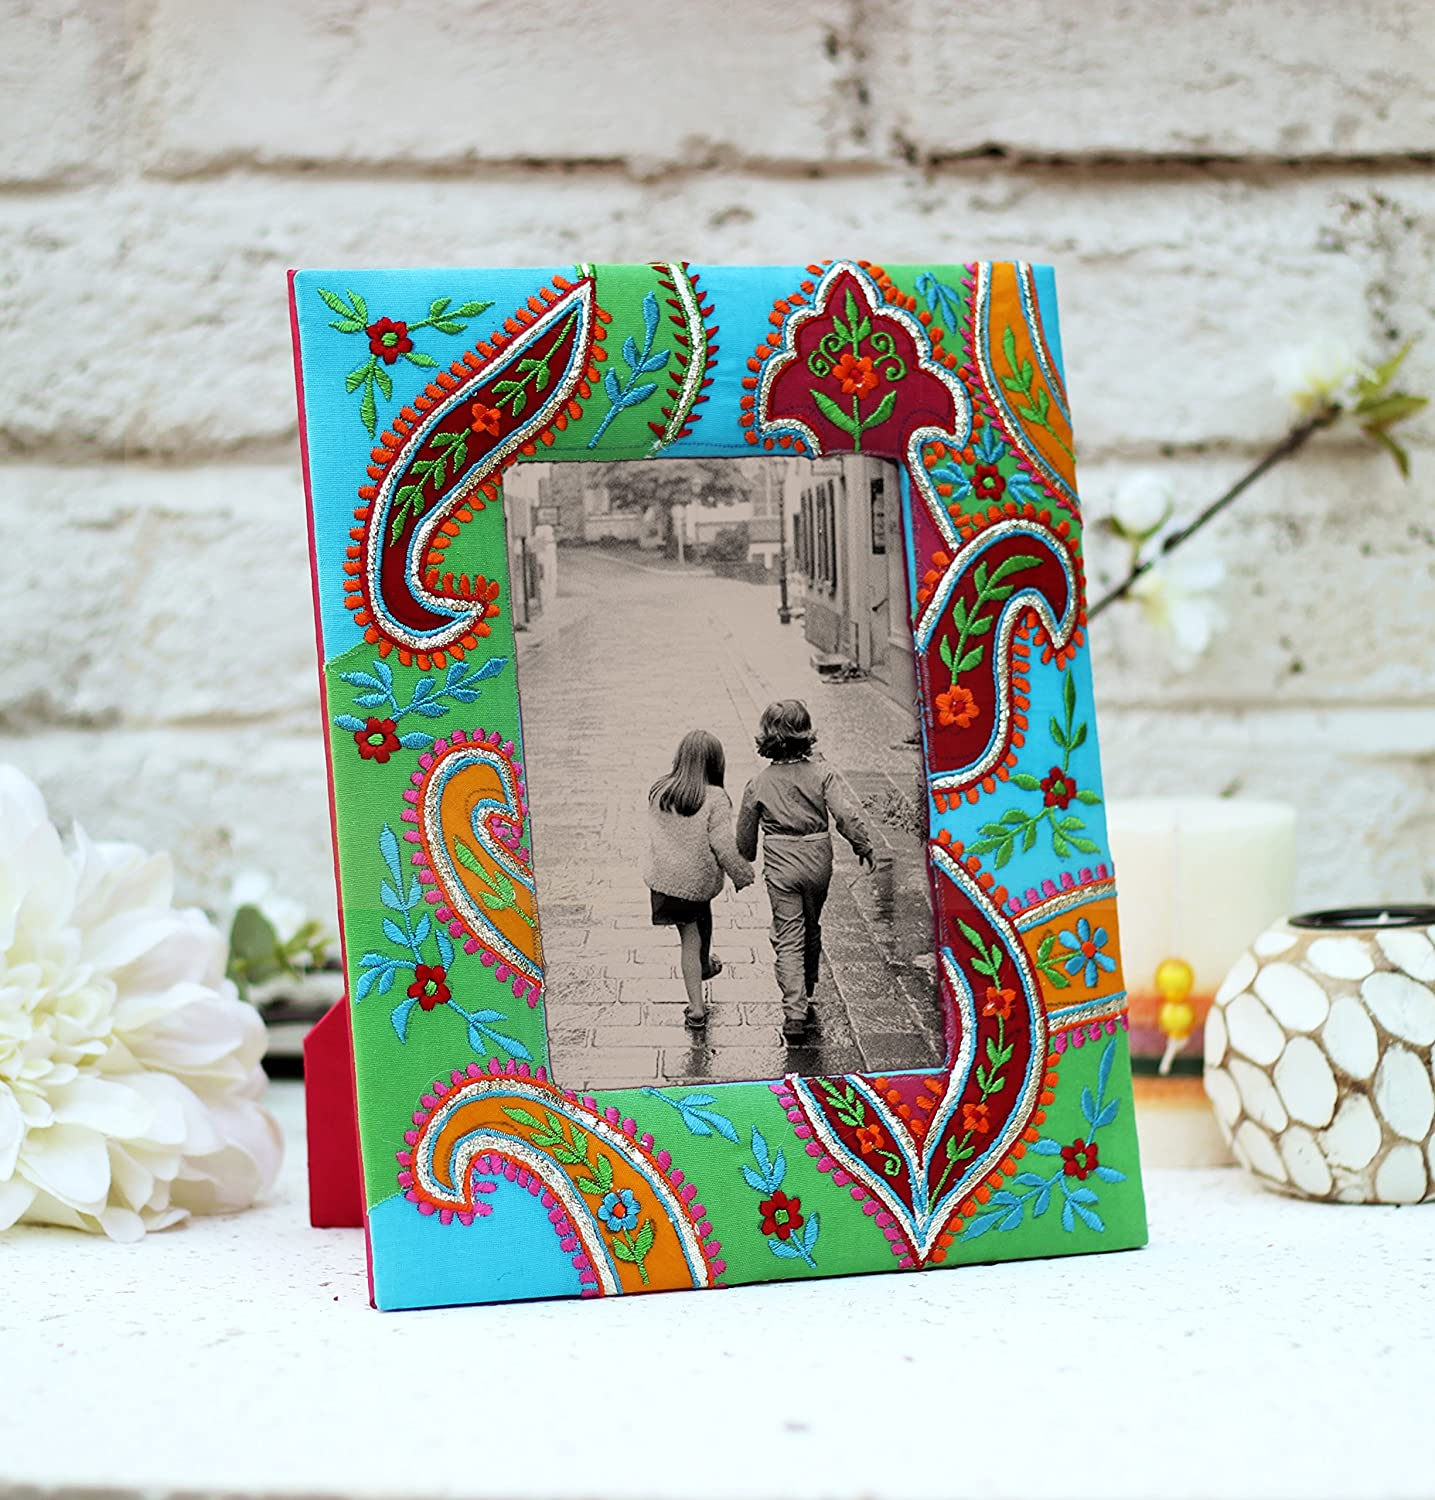 Raksha Bandhan Gift Vibrant Picture Frame with Ethnic Hand Embroidered Paisley Prints